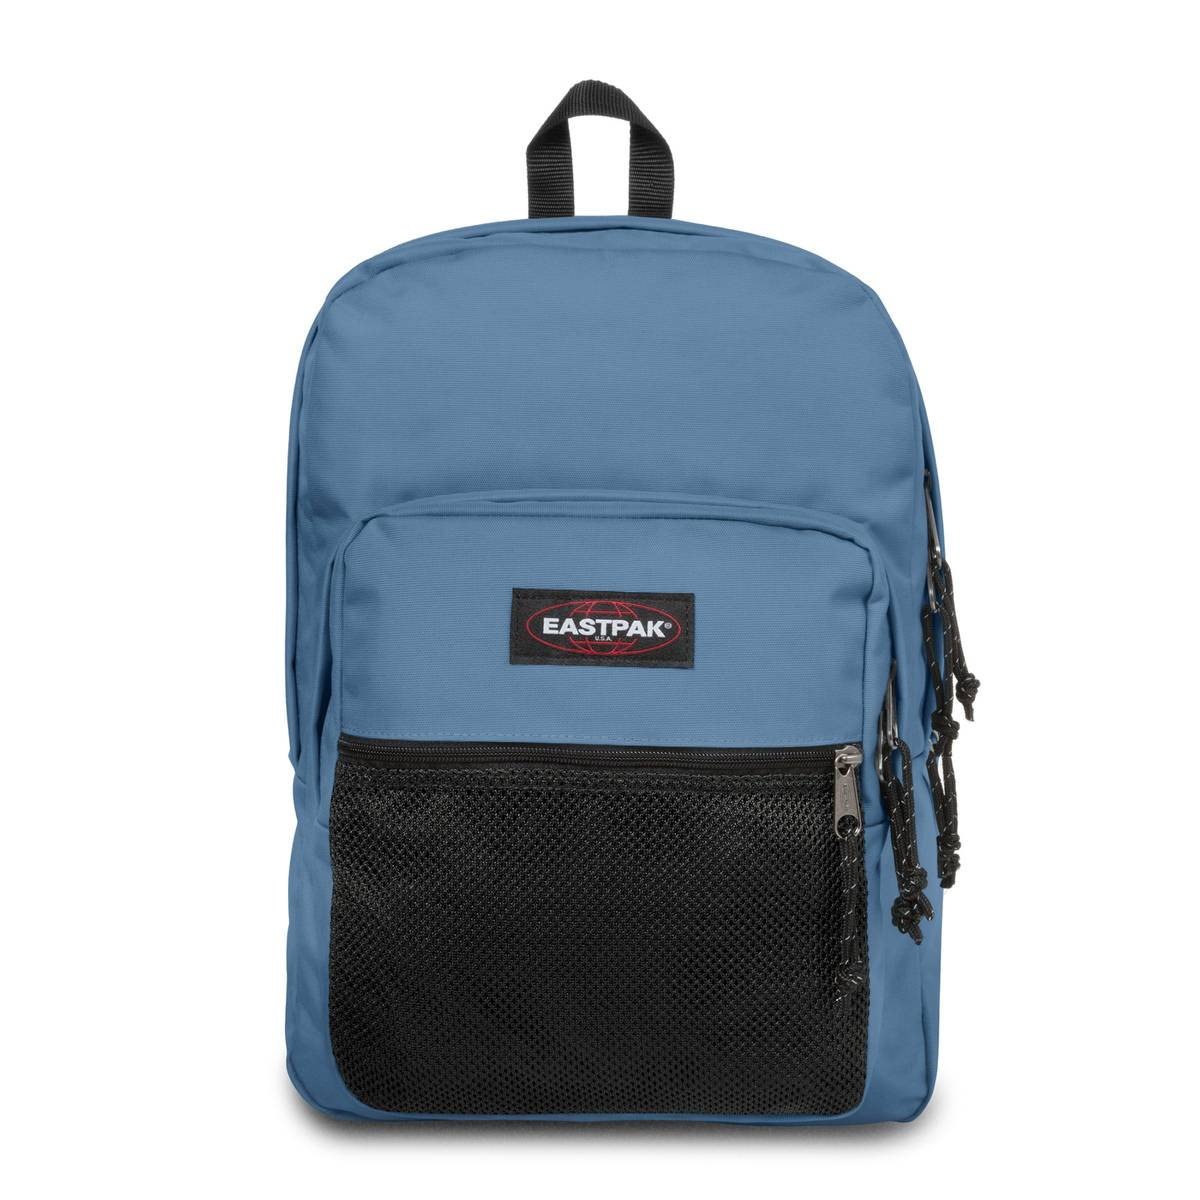 Eastpak Zaino Pinnacle azzurro